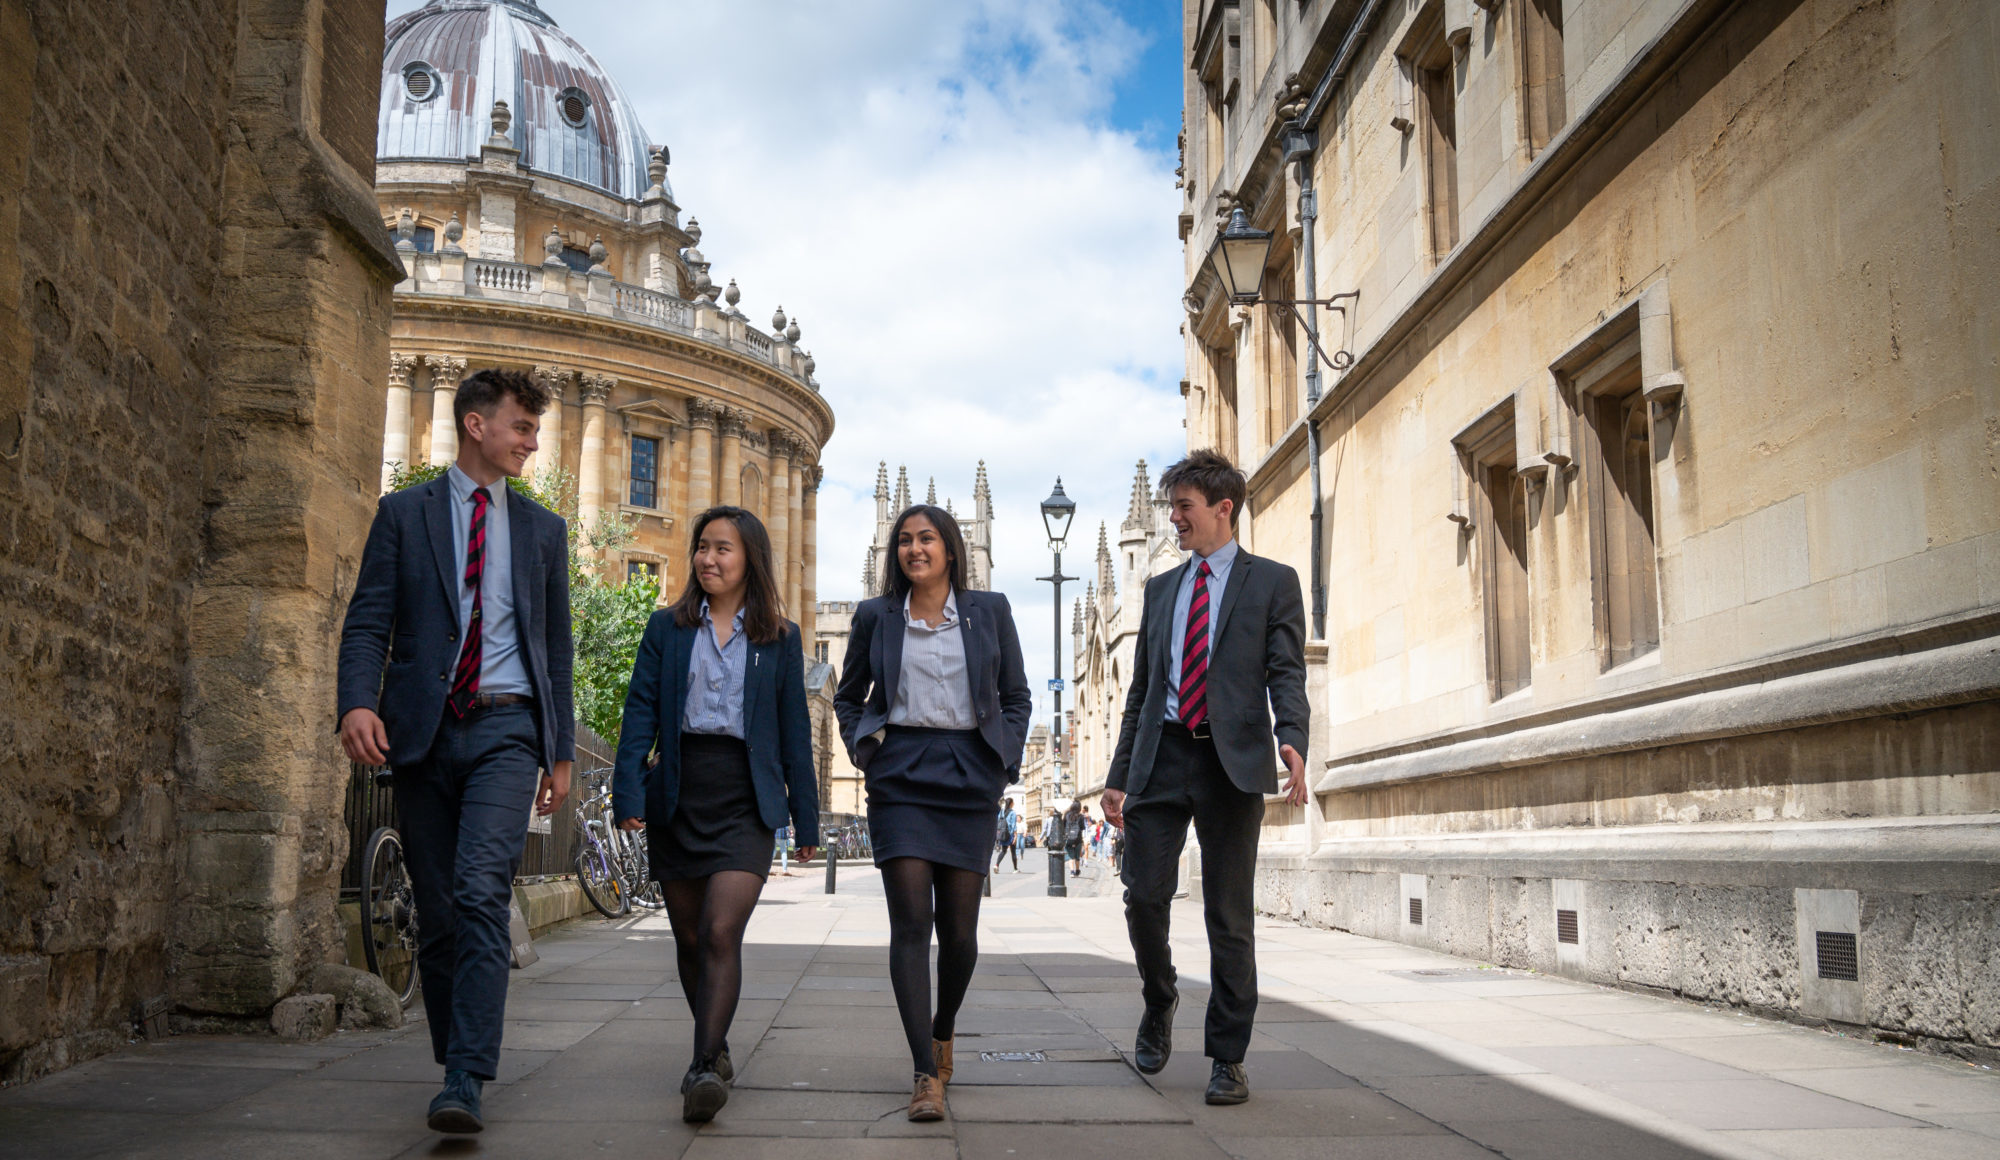 Magdalen College School Sixth Form students walking through Oxford in uniform